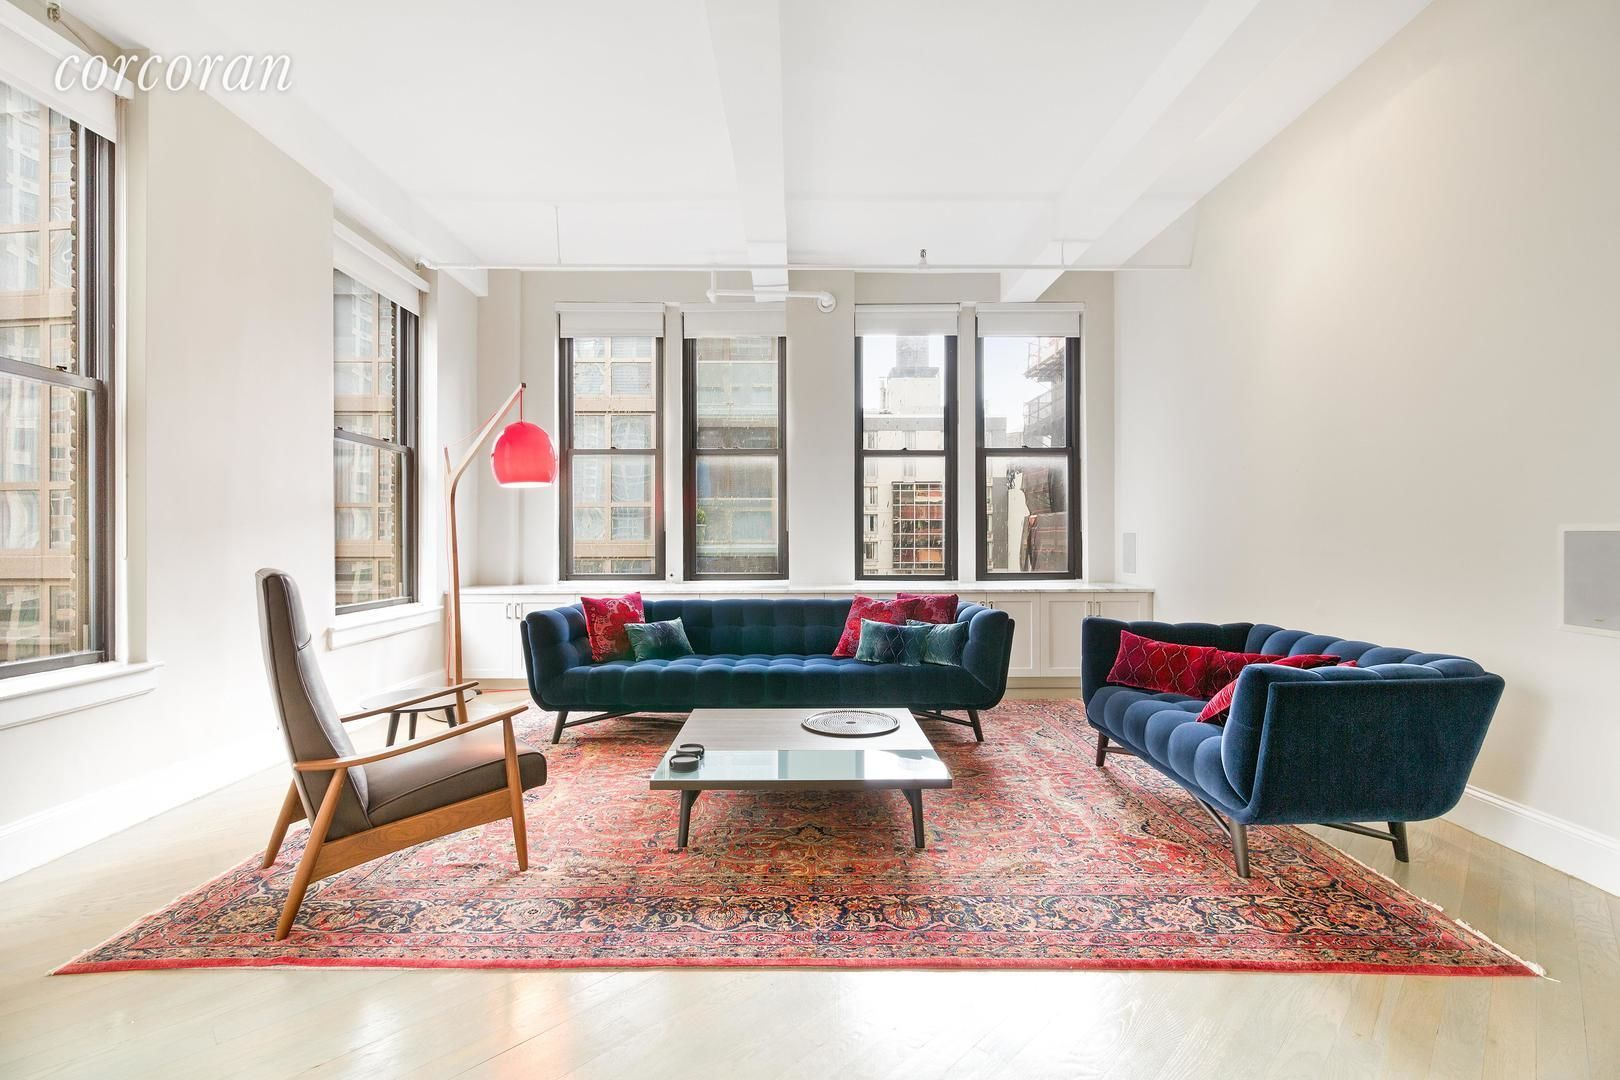 Apartment for sale at 110 West 25th Street, Apt 11 FL